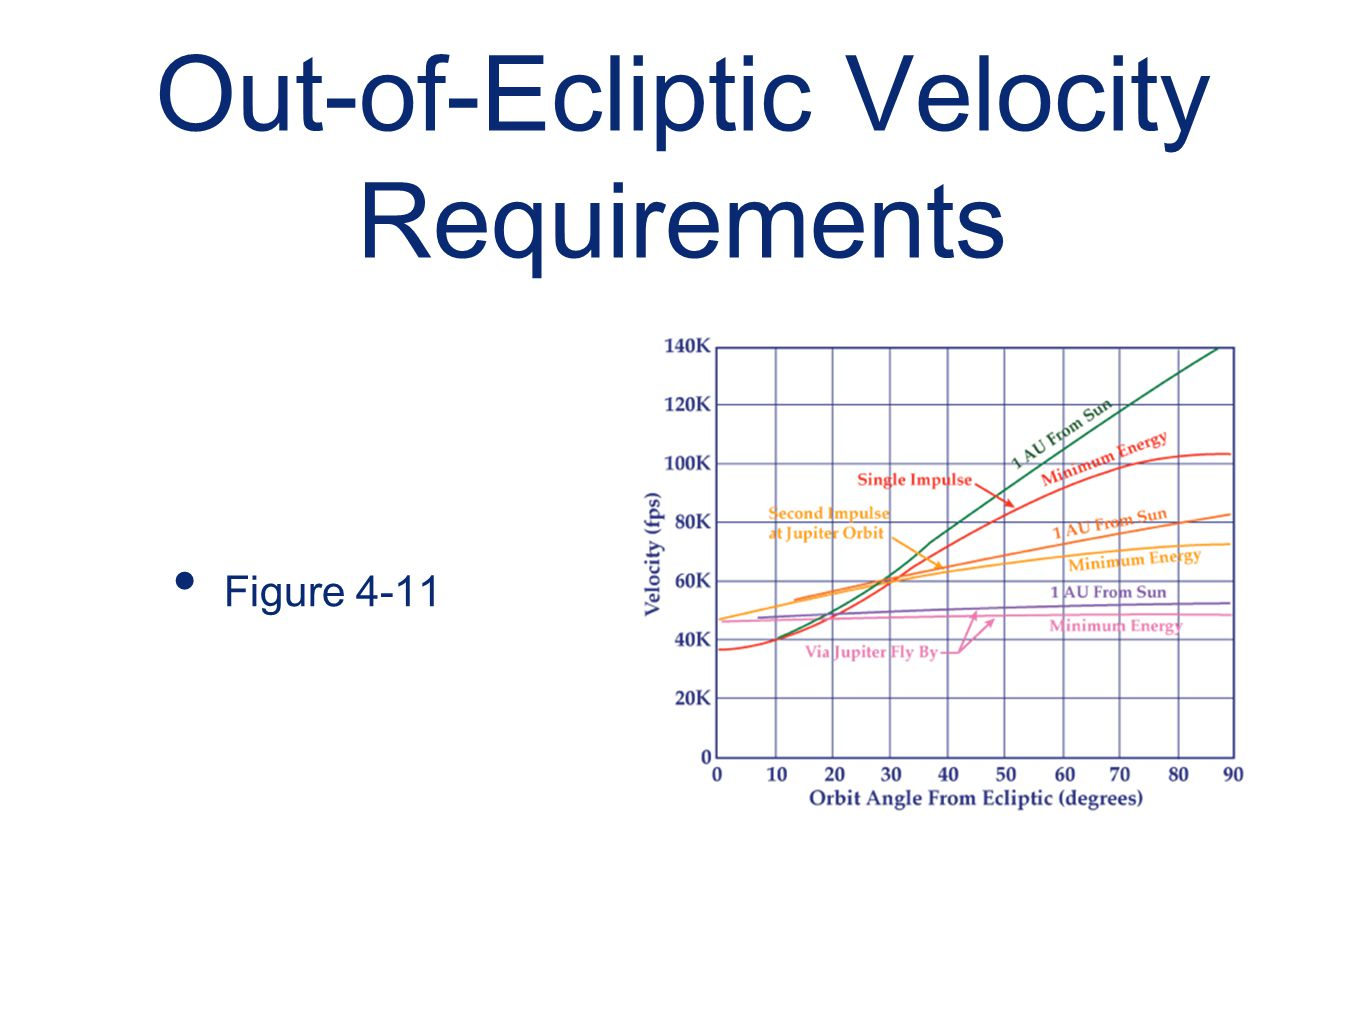 Out-of-Ecliptic Velocity Requirements Figure 4-11